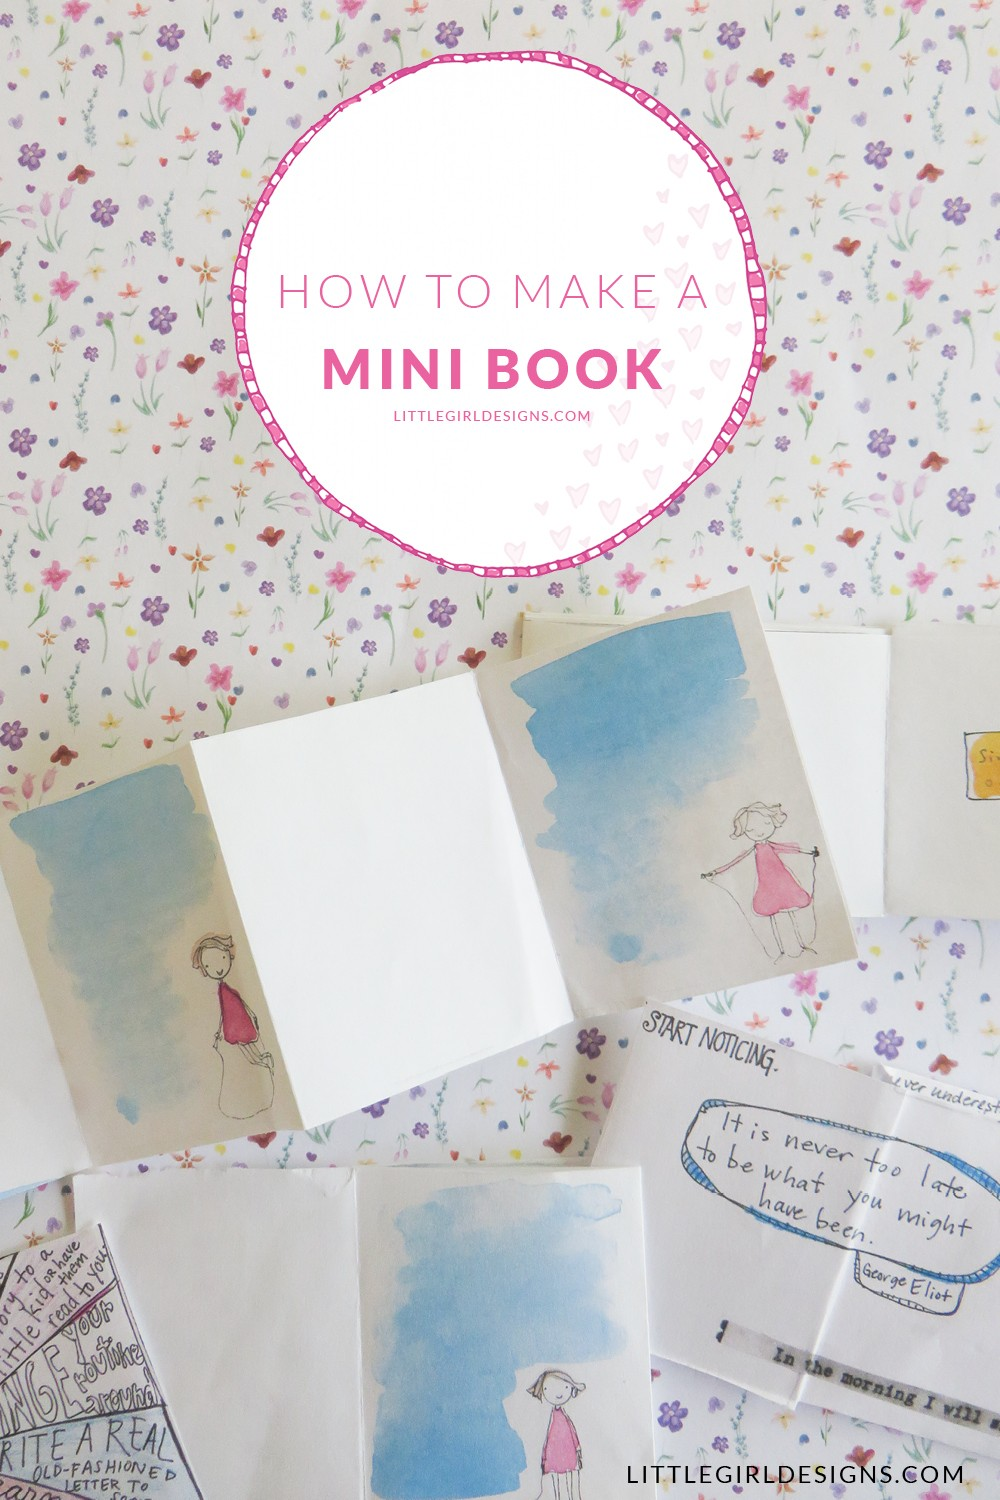 How to Make a Mini Book - making a mini accordion book isn't that difficult. I'll show how to make one today @littlegirldesigns.com